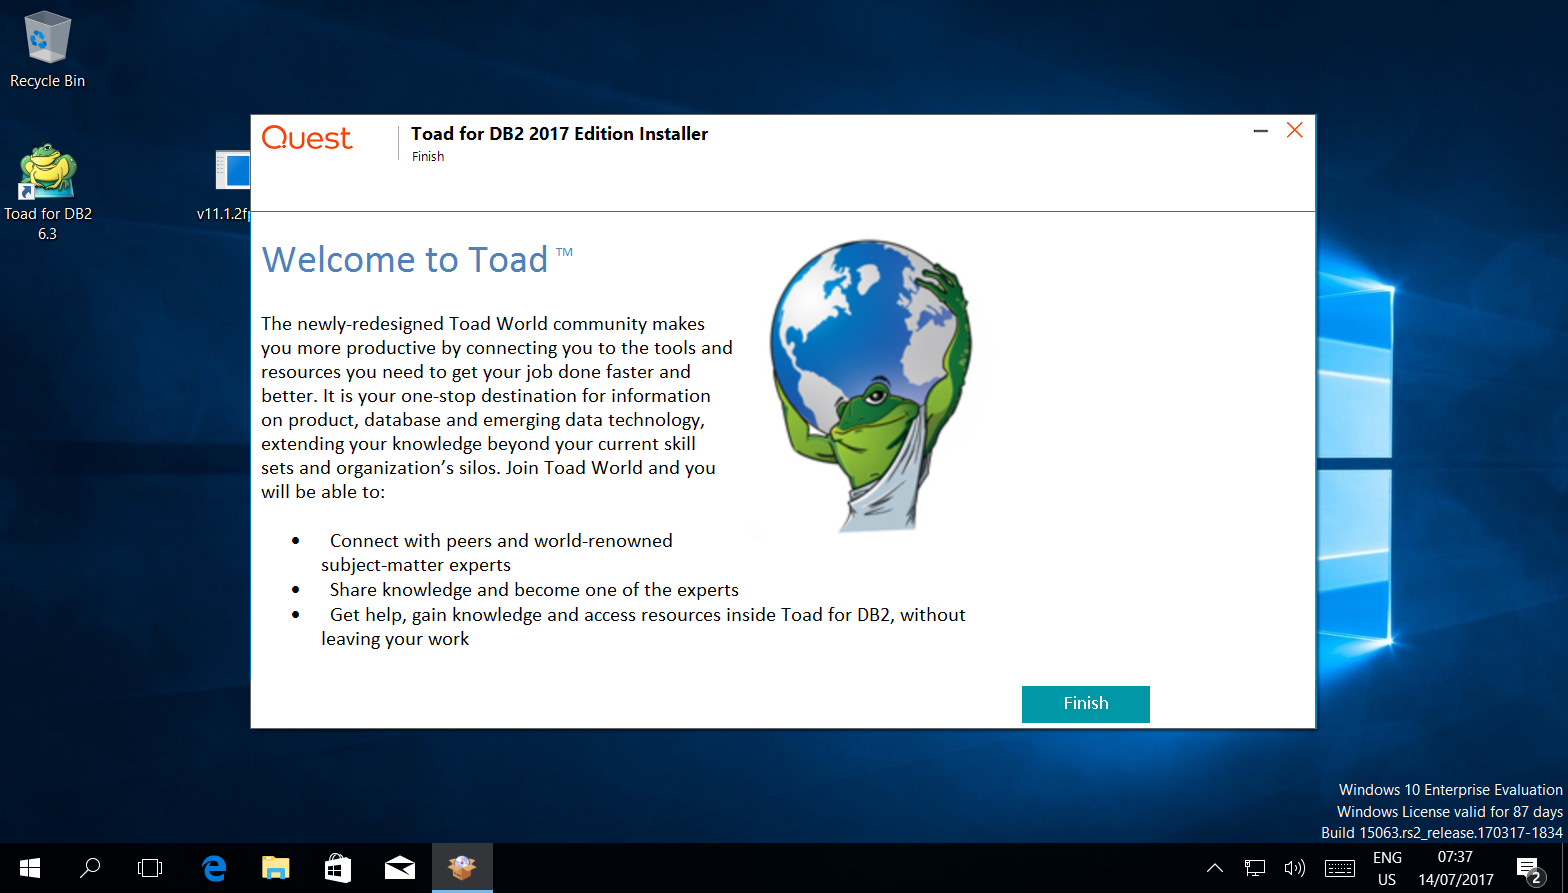 Install Toad for DB2 version 6 3 using IBM Data Server Driver